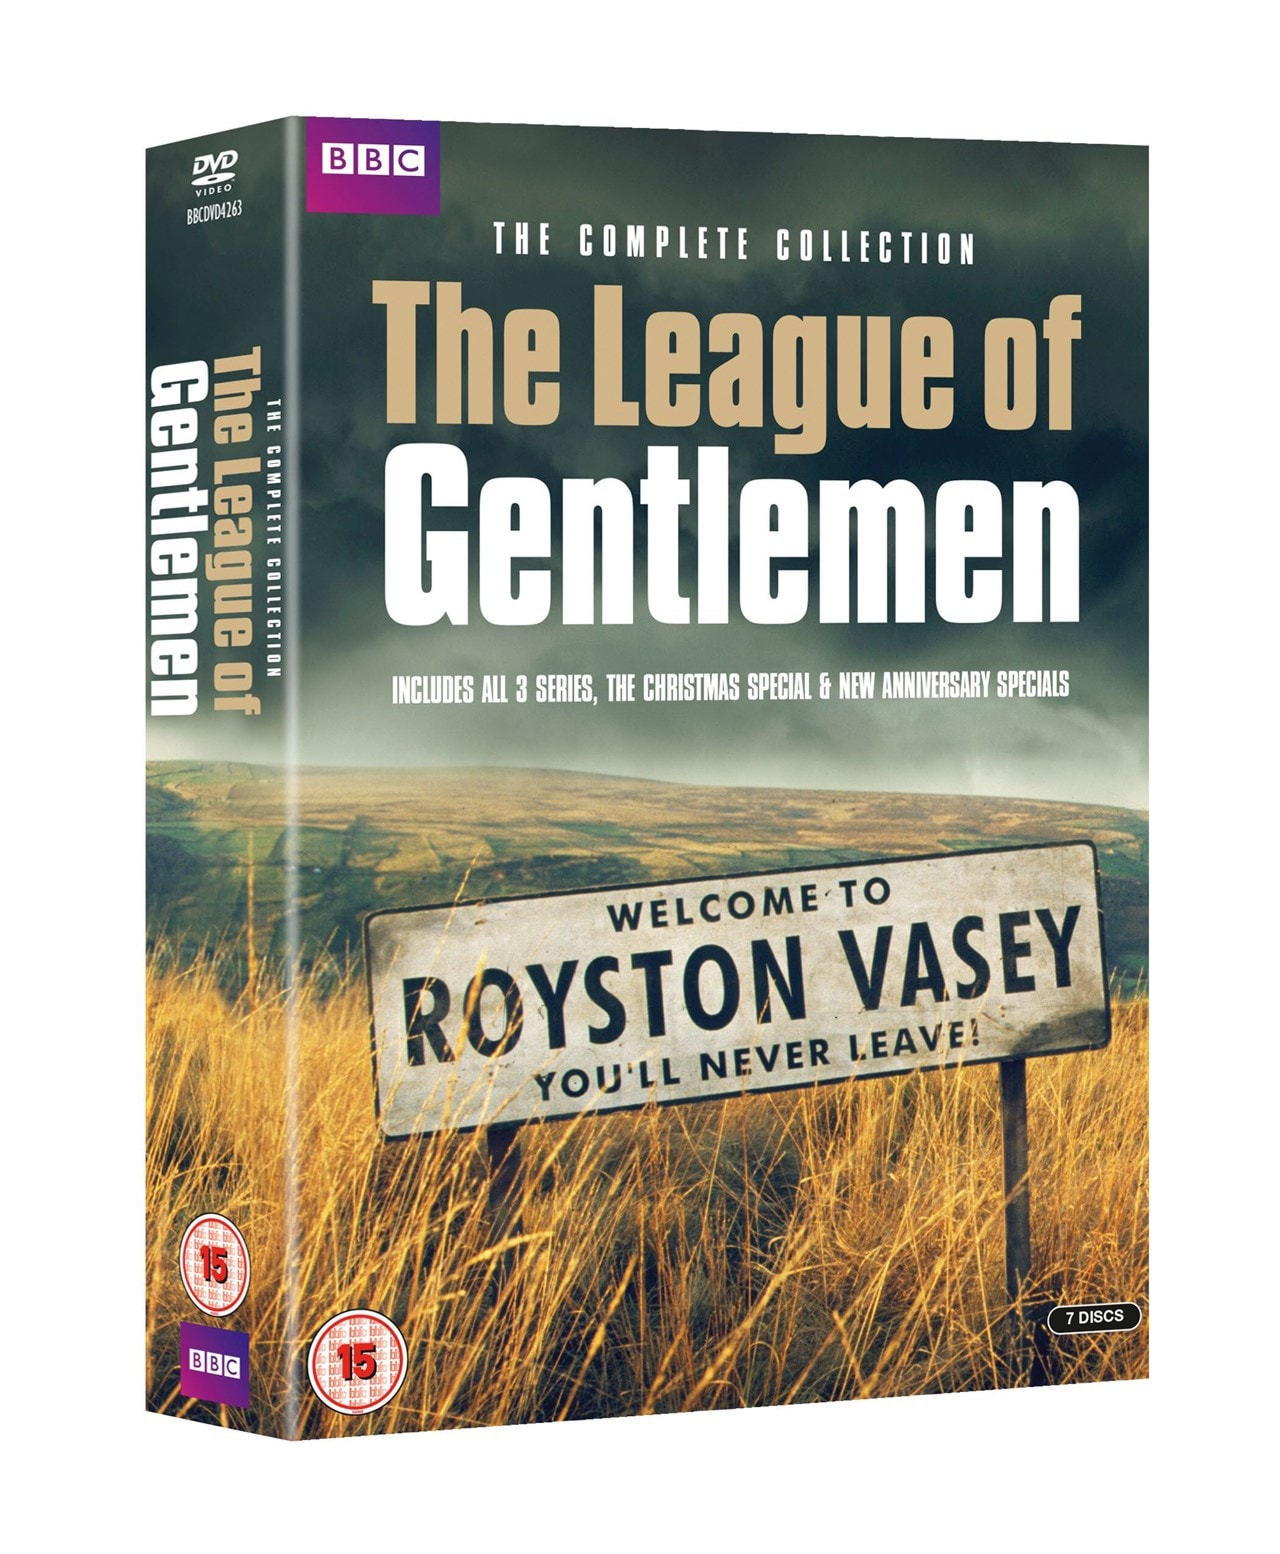 The League of Gentlemen: The Complete Collection - 2